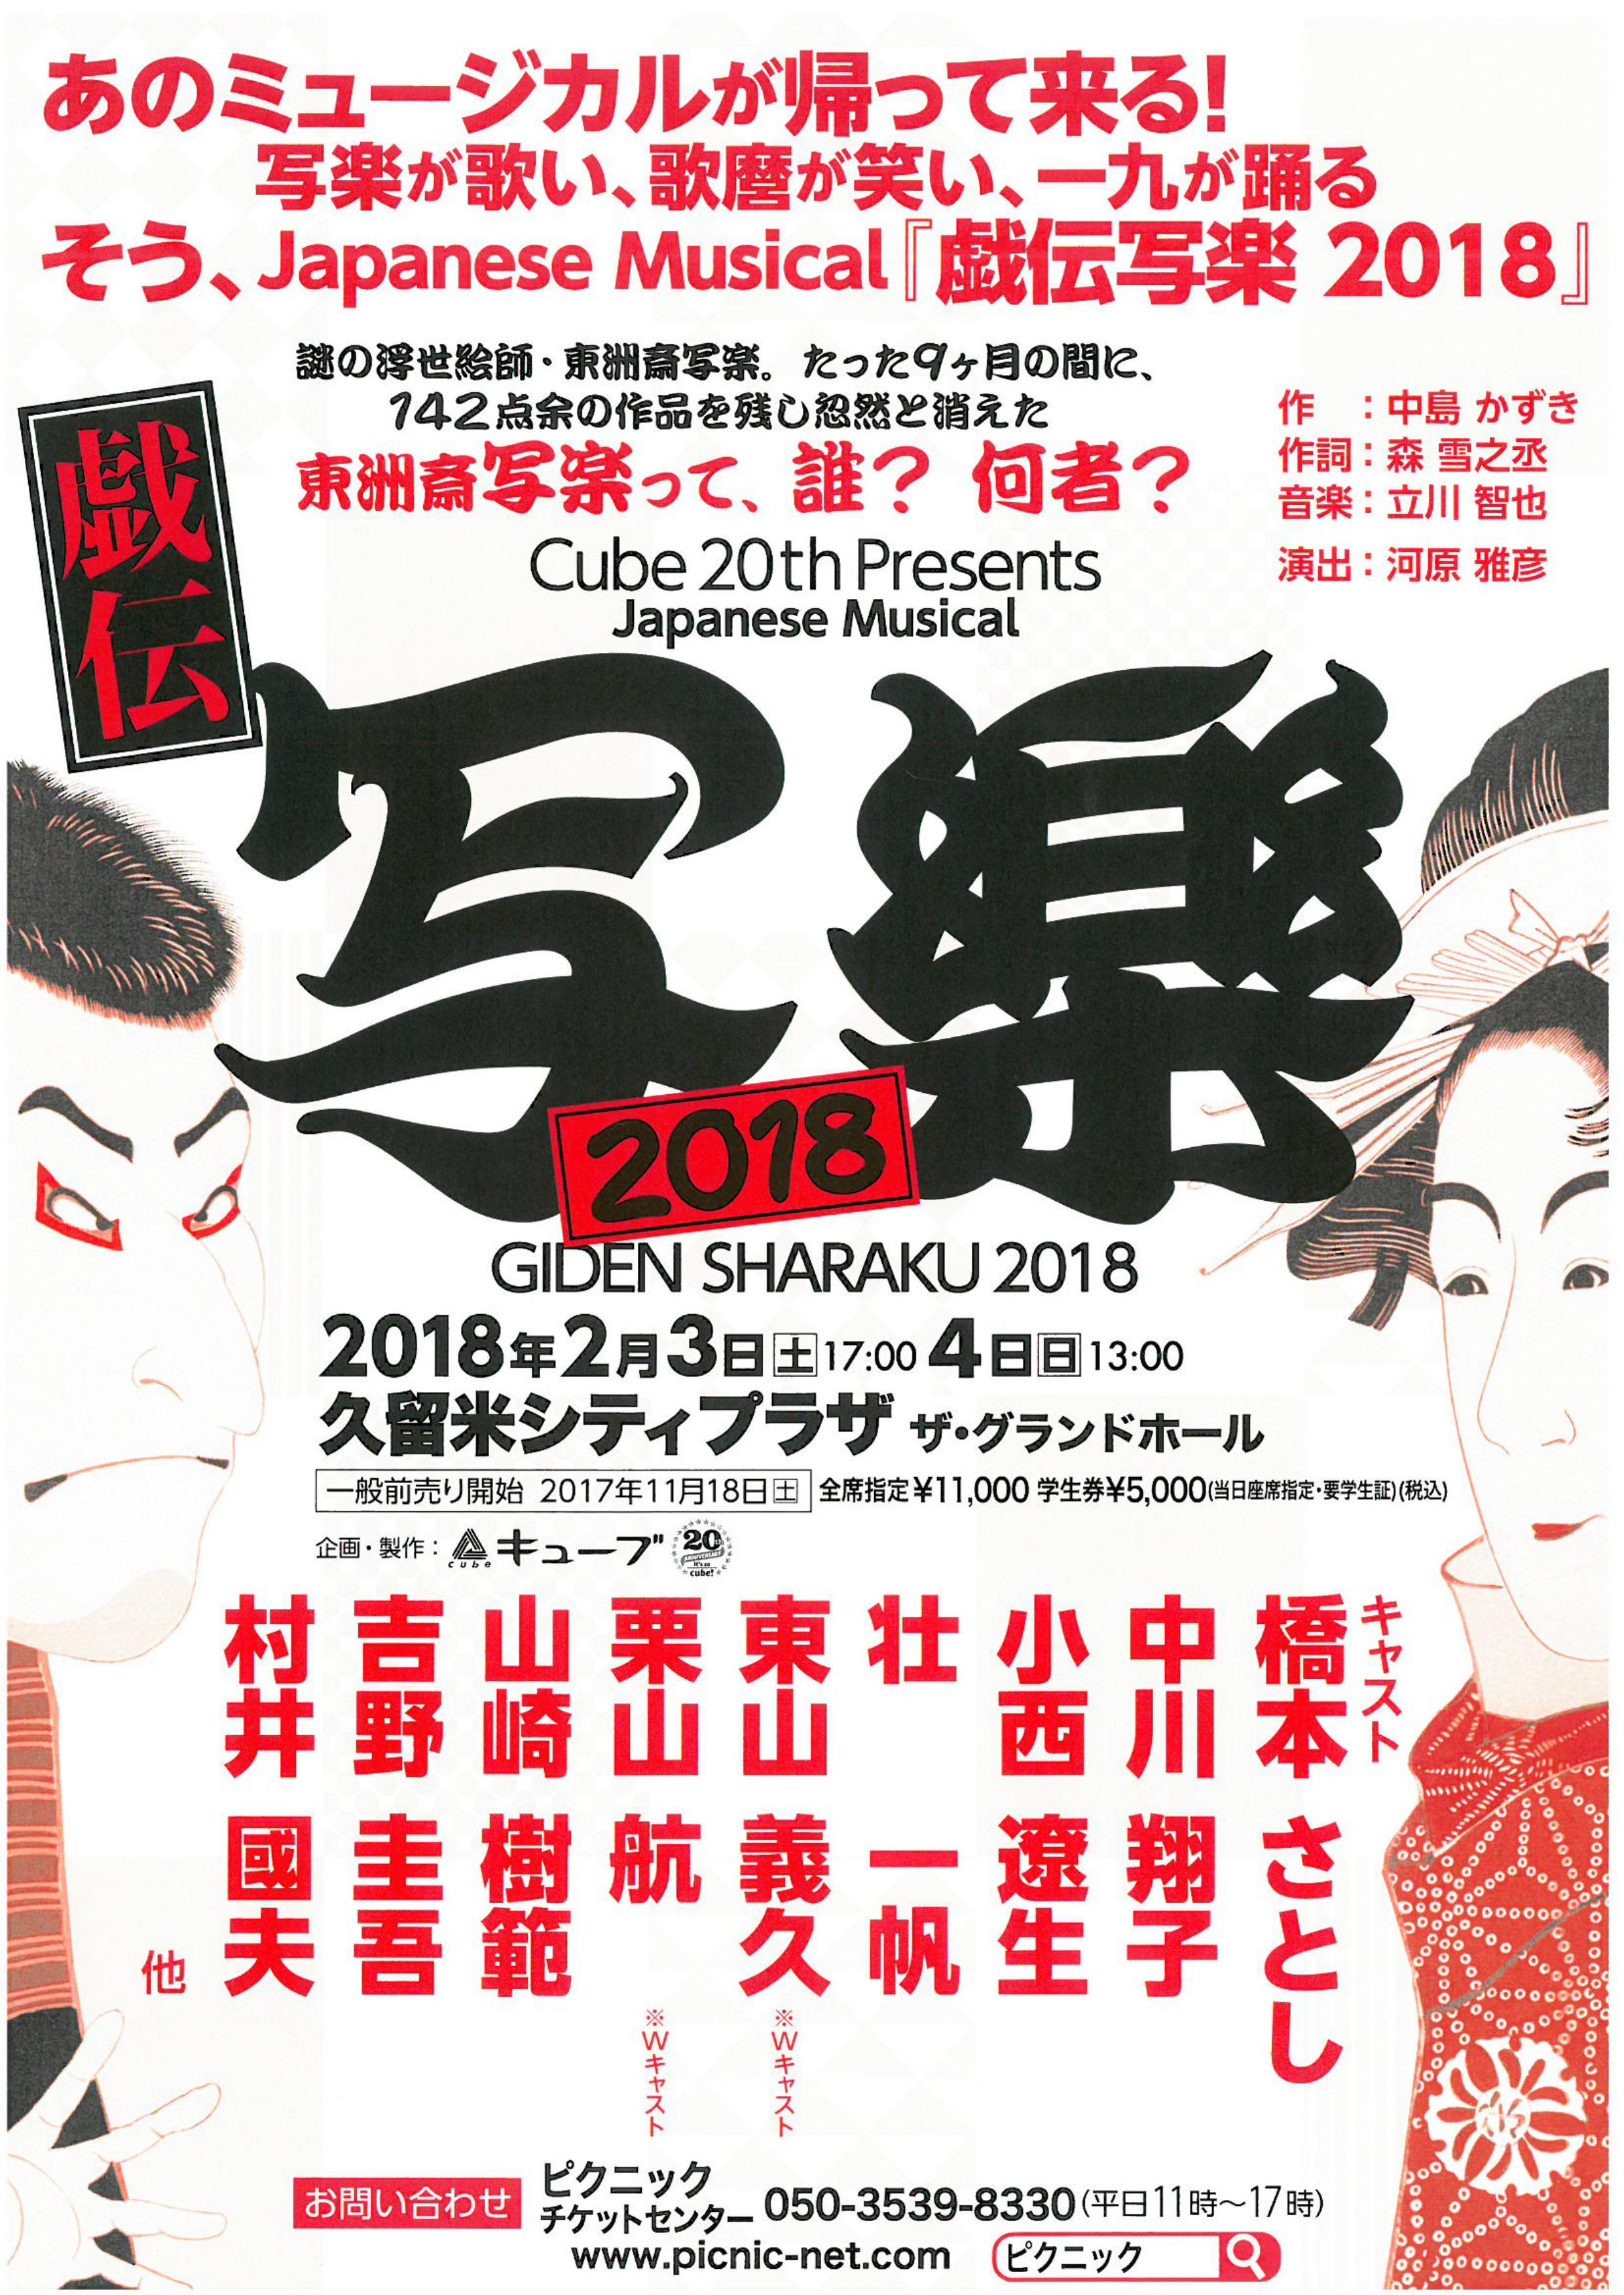 Cube 20th Presents Japanese Musical 戯伝写楽2018